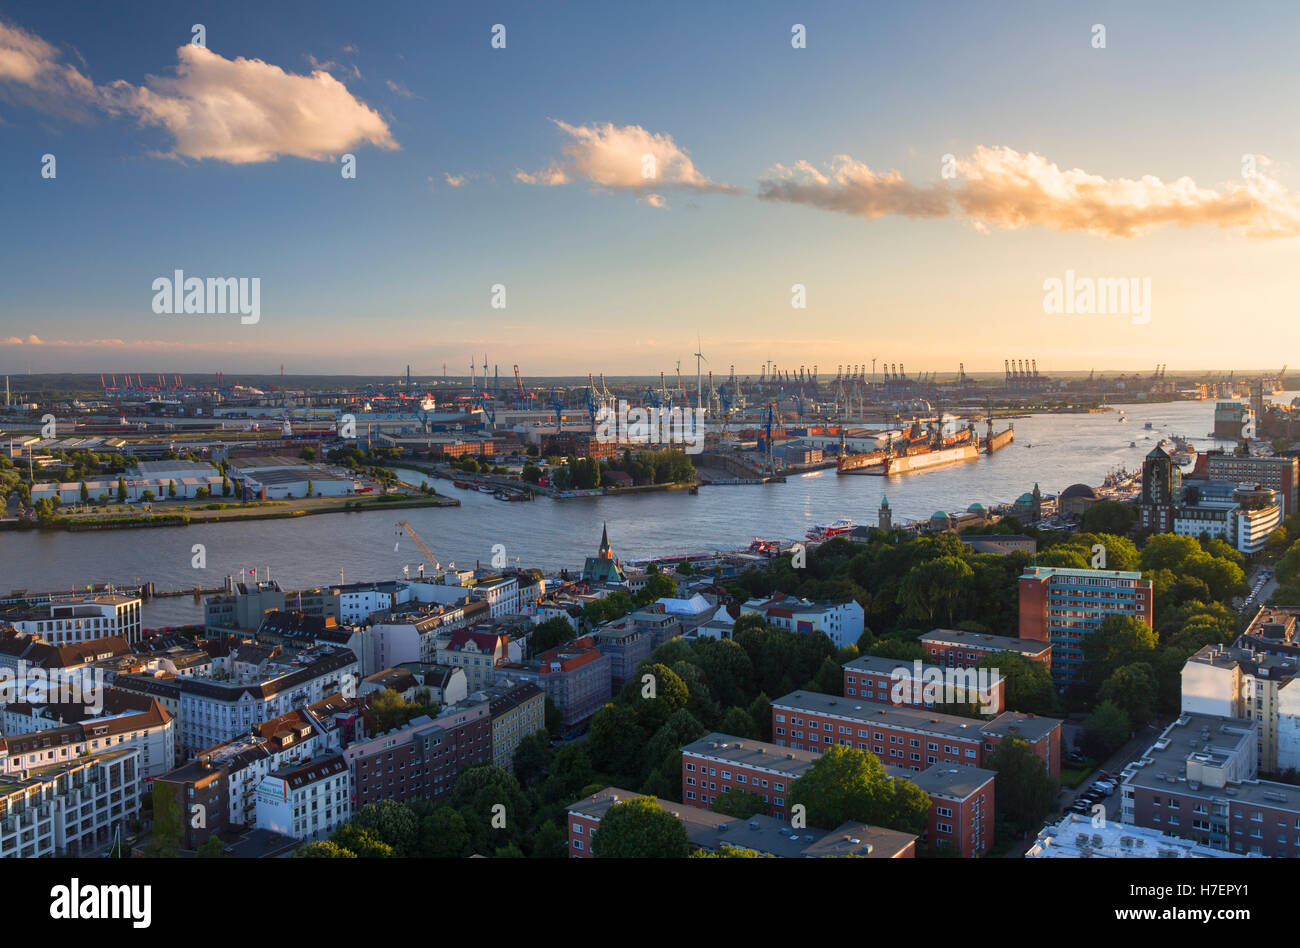 View of harbour and Elbe River, Hamburg, Germany - Stock Image